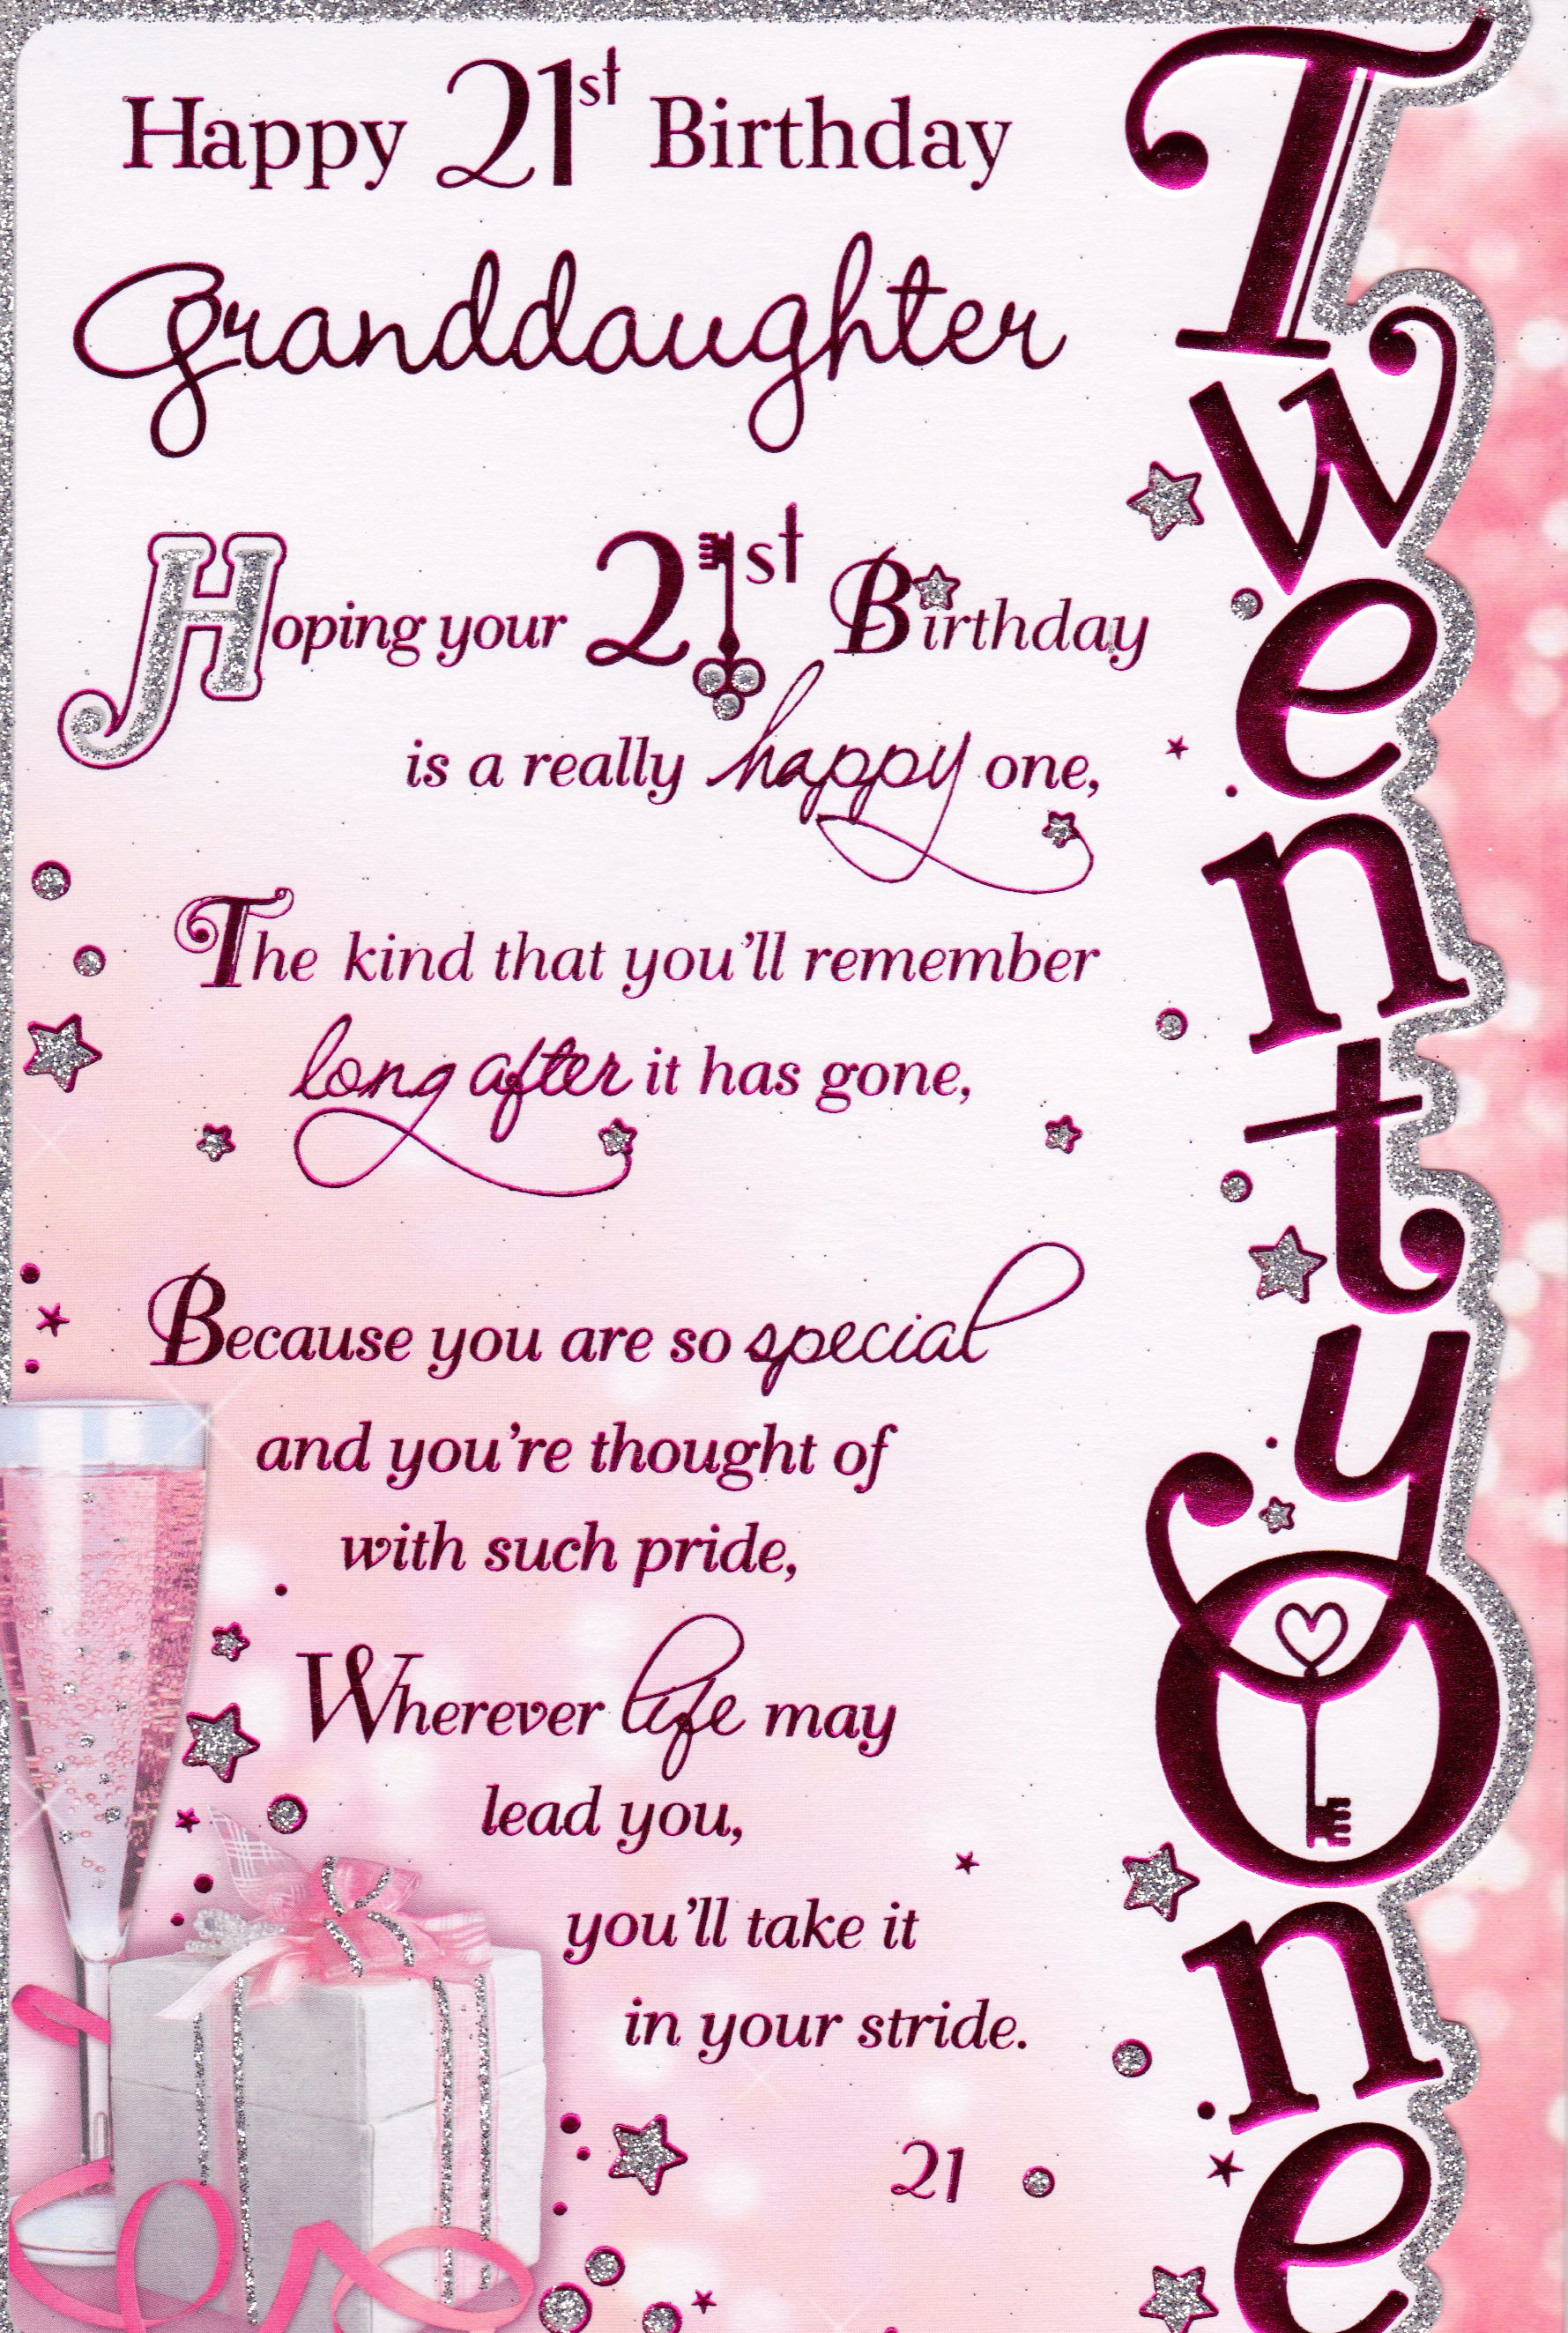 21st birthday greeting card messages ; 21st-birthday-messages-for-granddaughter-1